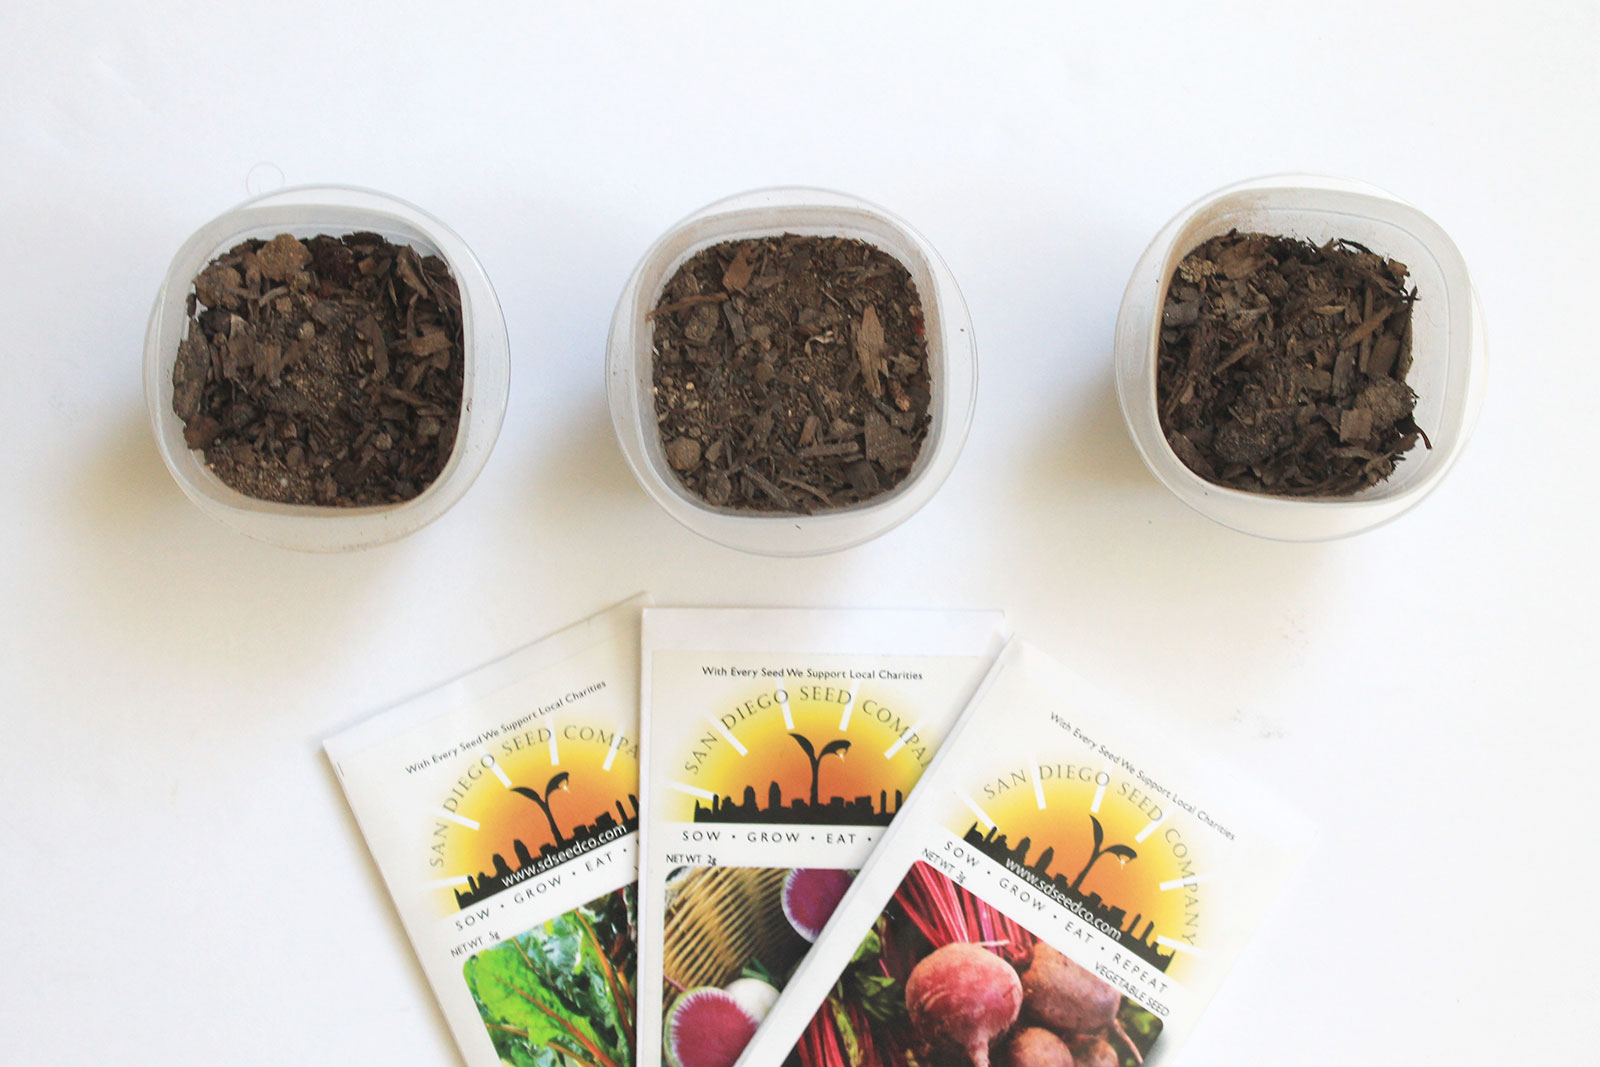 Repurpose plastic containers to store seed starters